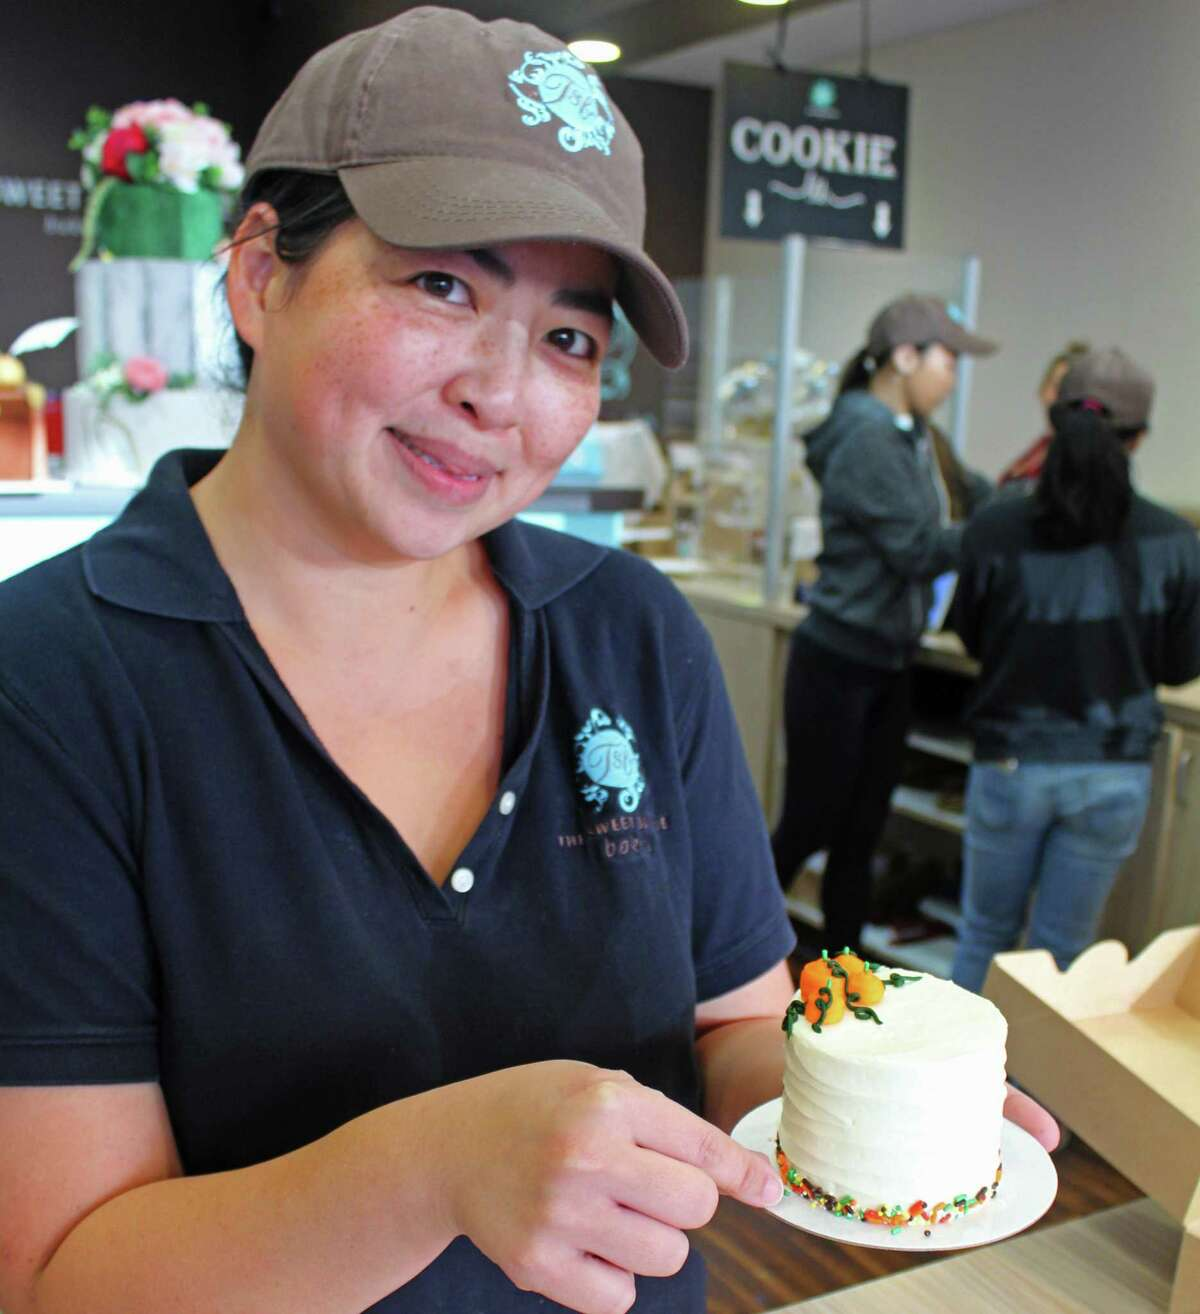 Christine Nguyen, owner of The Sweet Boutique, with one of their special holiday cakes.